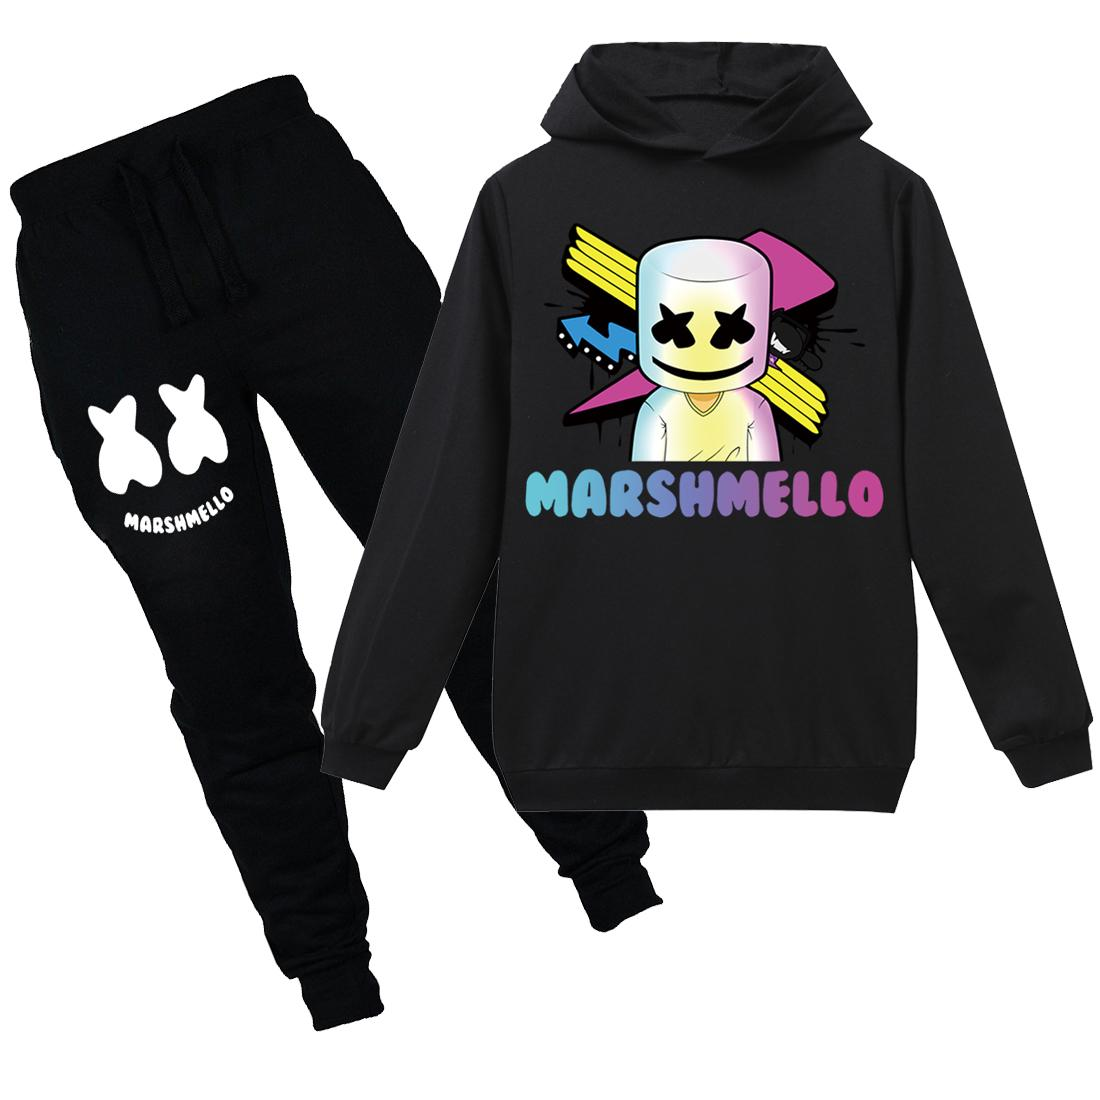 ef6bec06770e 2019 Marshmello Dj Mask Boys Hoodie Cotton 2019 New Spring Sweatshirts  Cotton Girls T Shirt Kids Clothes Fortnight Hoodie Tracksuits From  Tzx3766256, ...